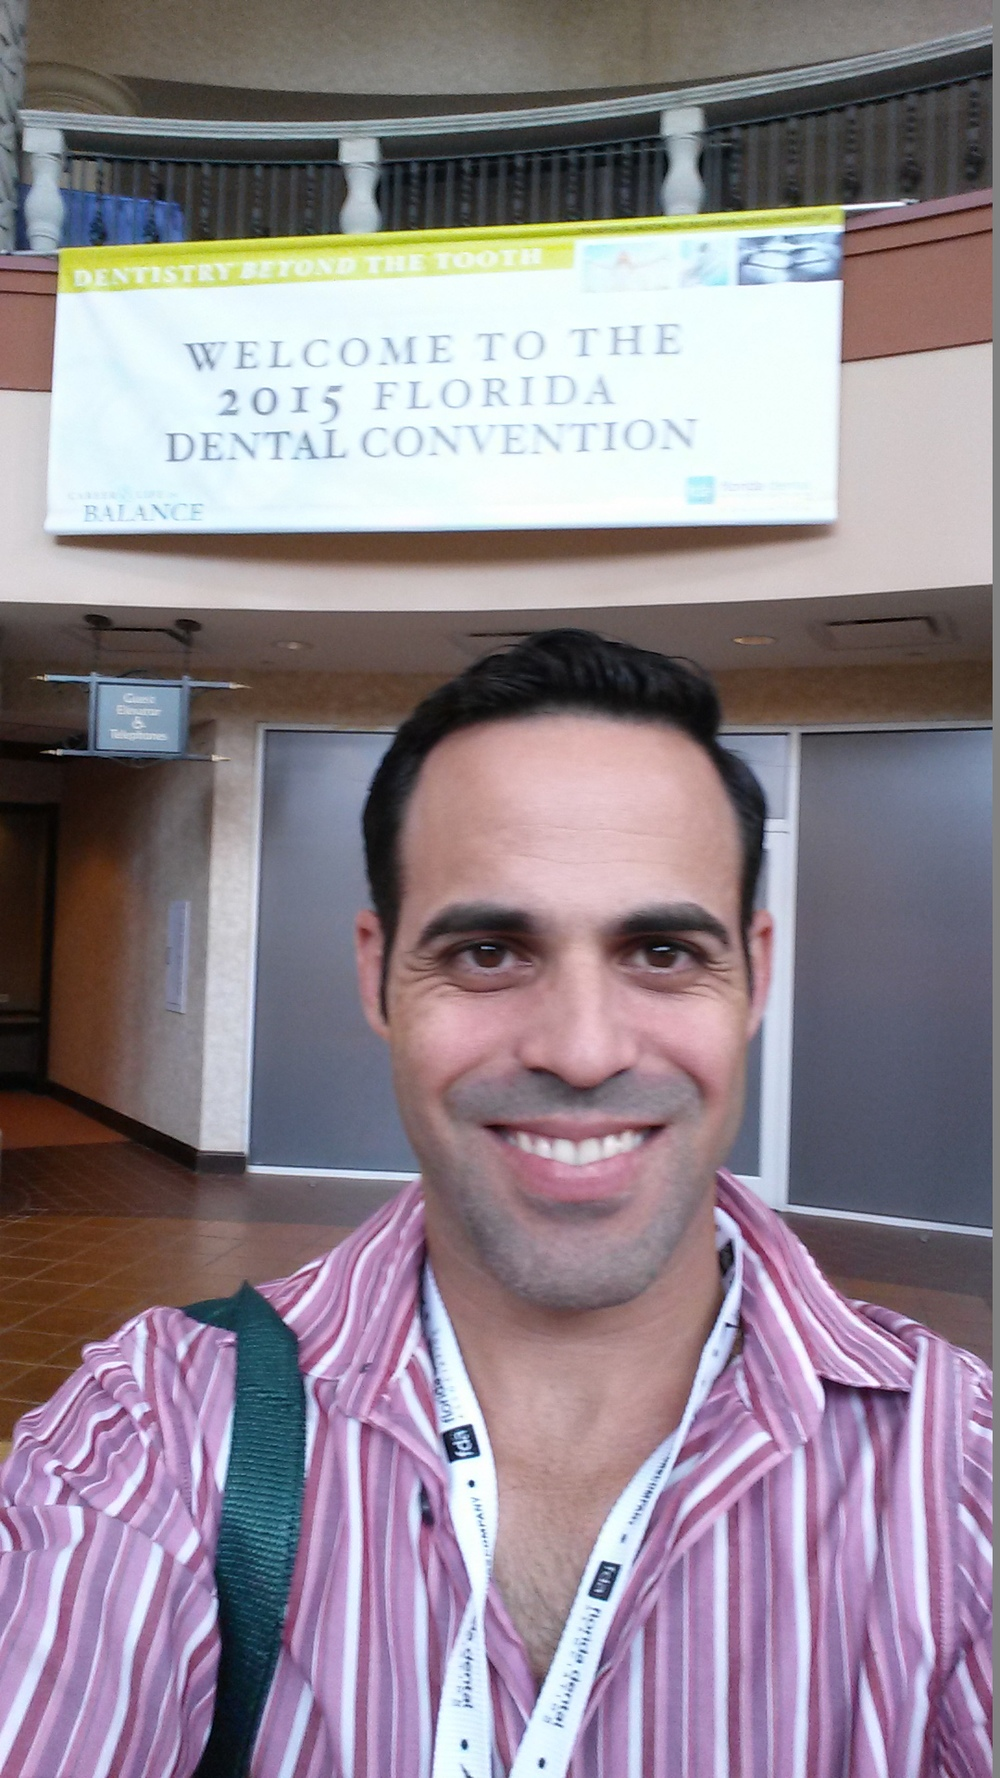 Gainesville FL Dentist - FDC 2015 - Florida Dental Convention 2015  - American Dental Association ADA.jpg